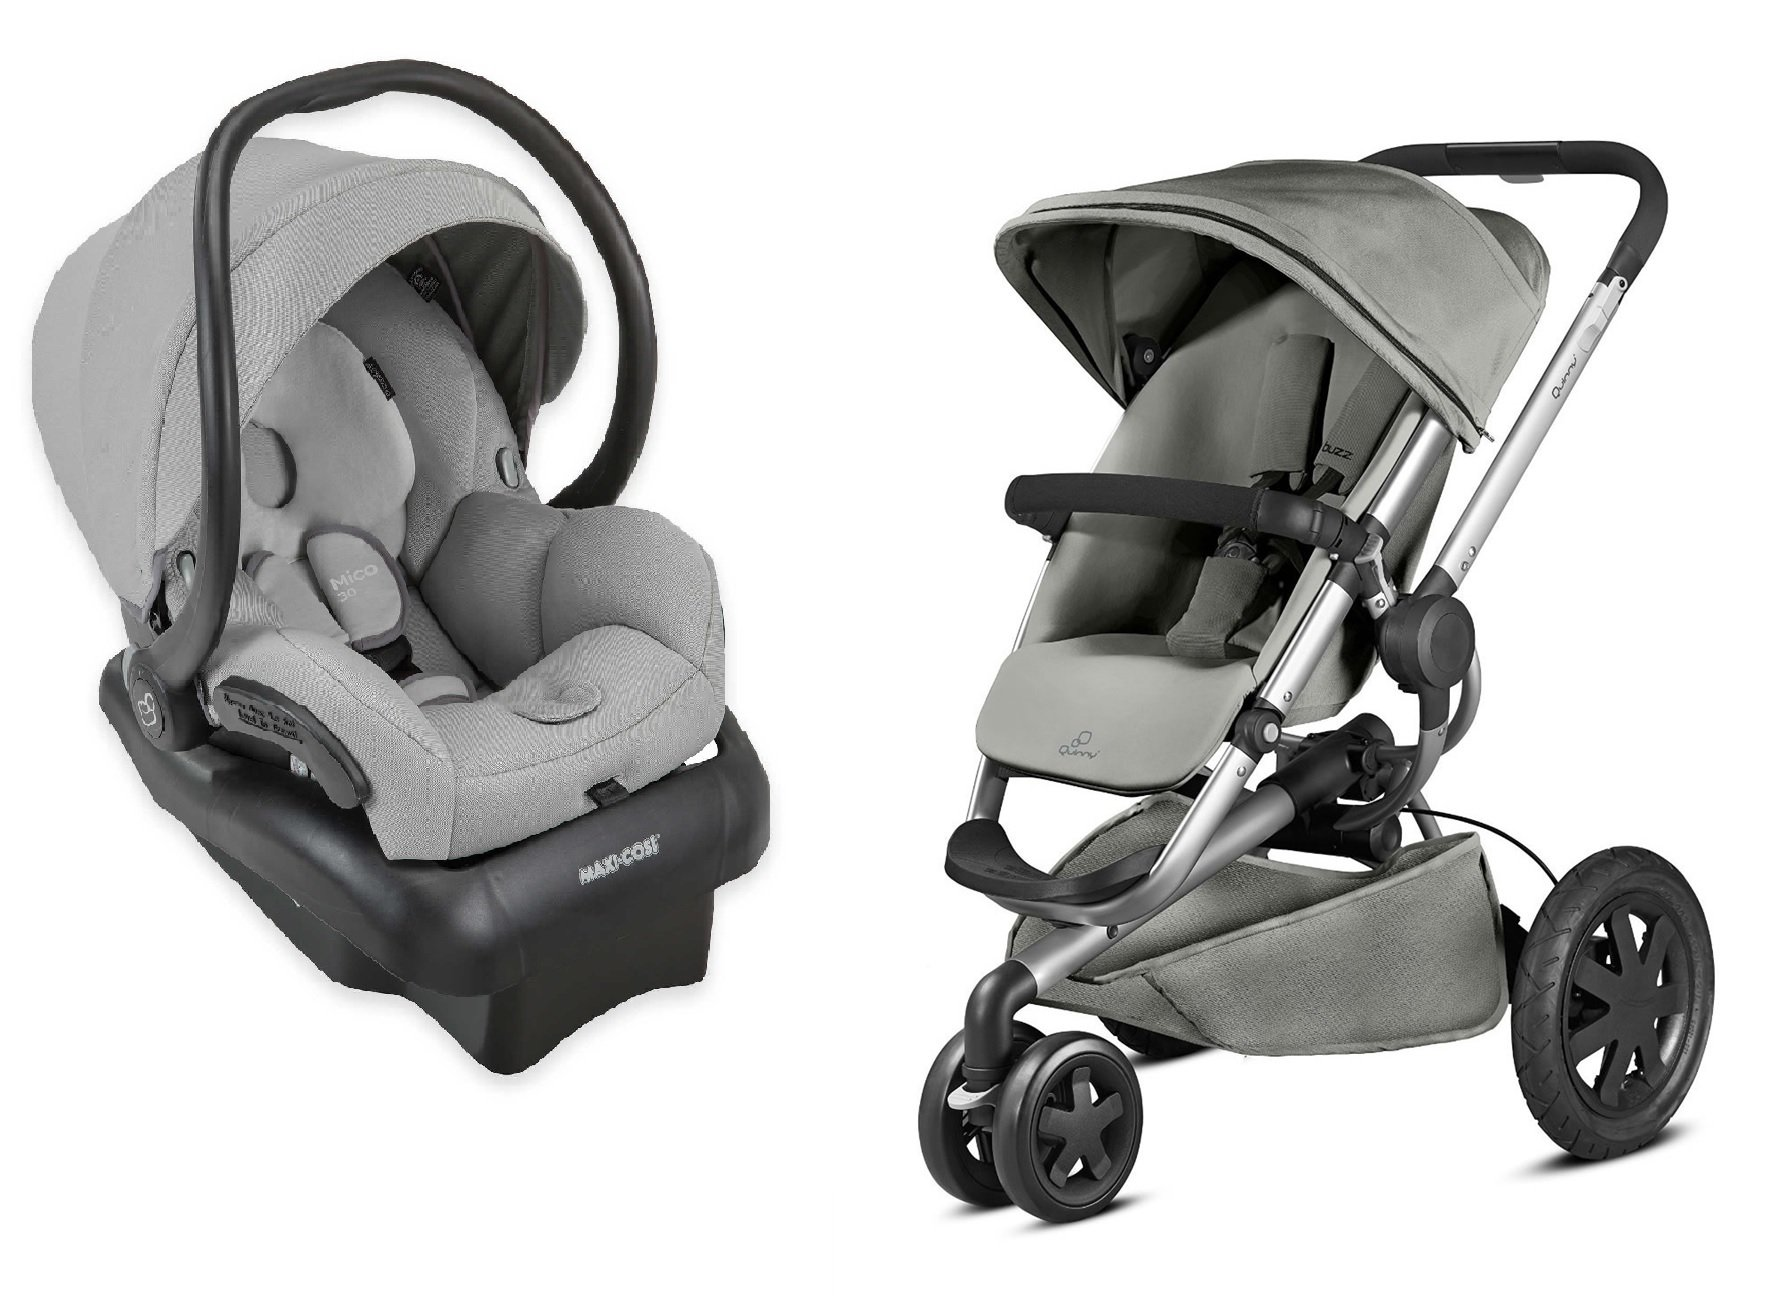 Quinny 2015 Buzz Xtra 2.0 Stroller with Maxi-Cosi Mico 30 Infant Car Seat, Grey